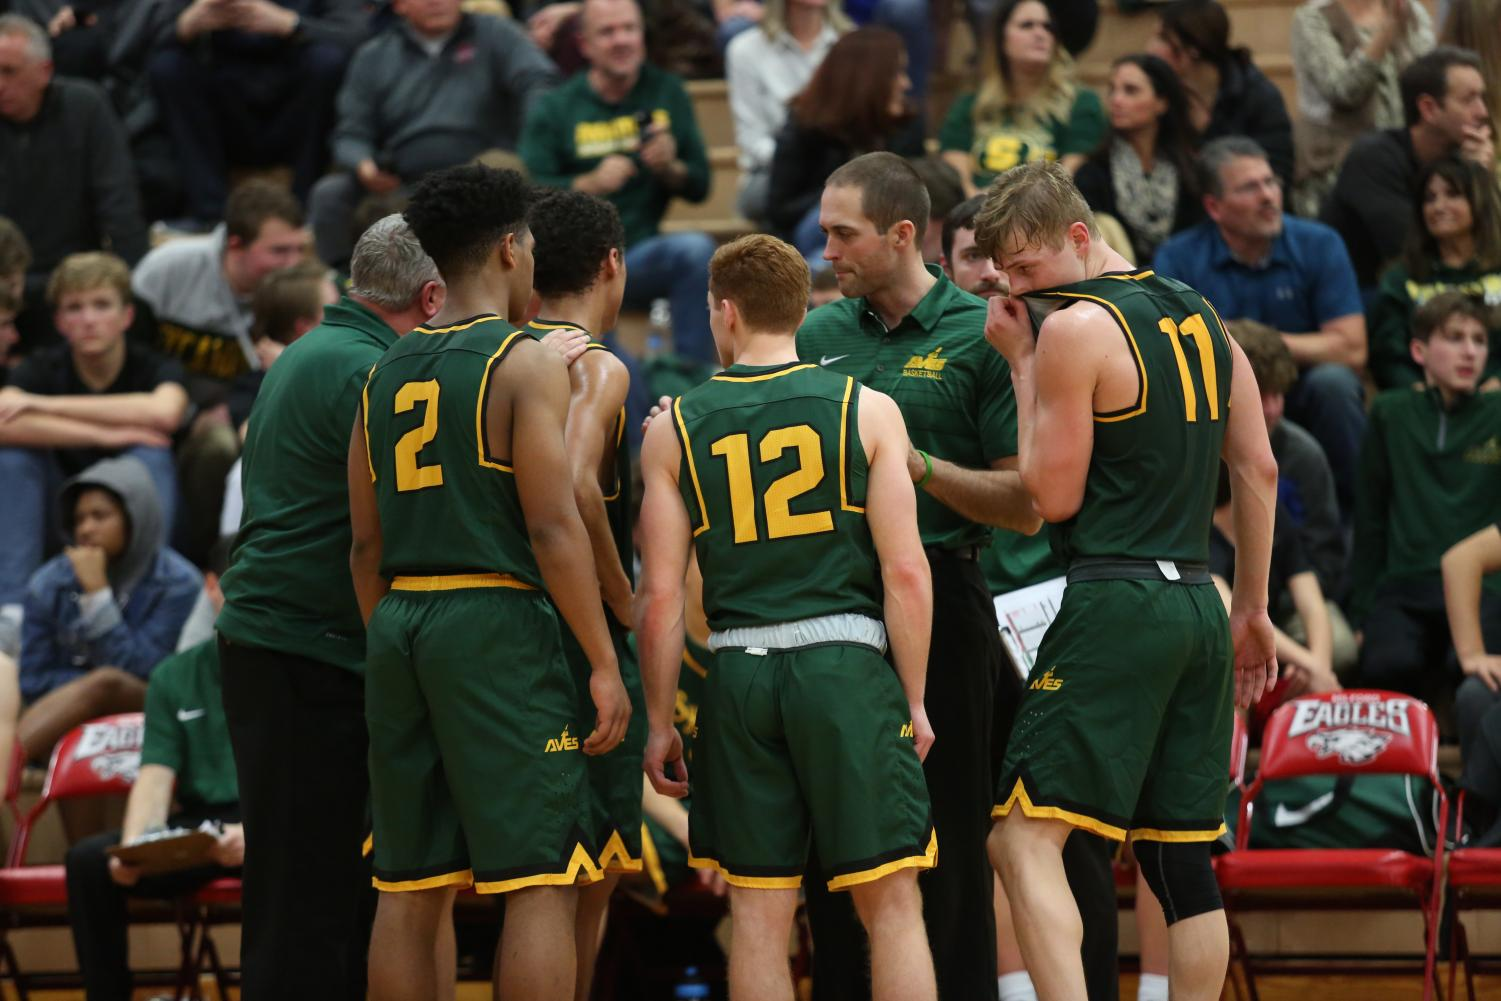 Varsity basketball starts season – The Leaf